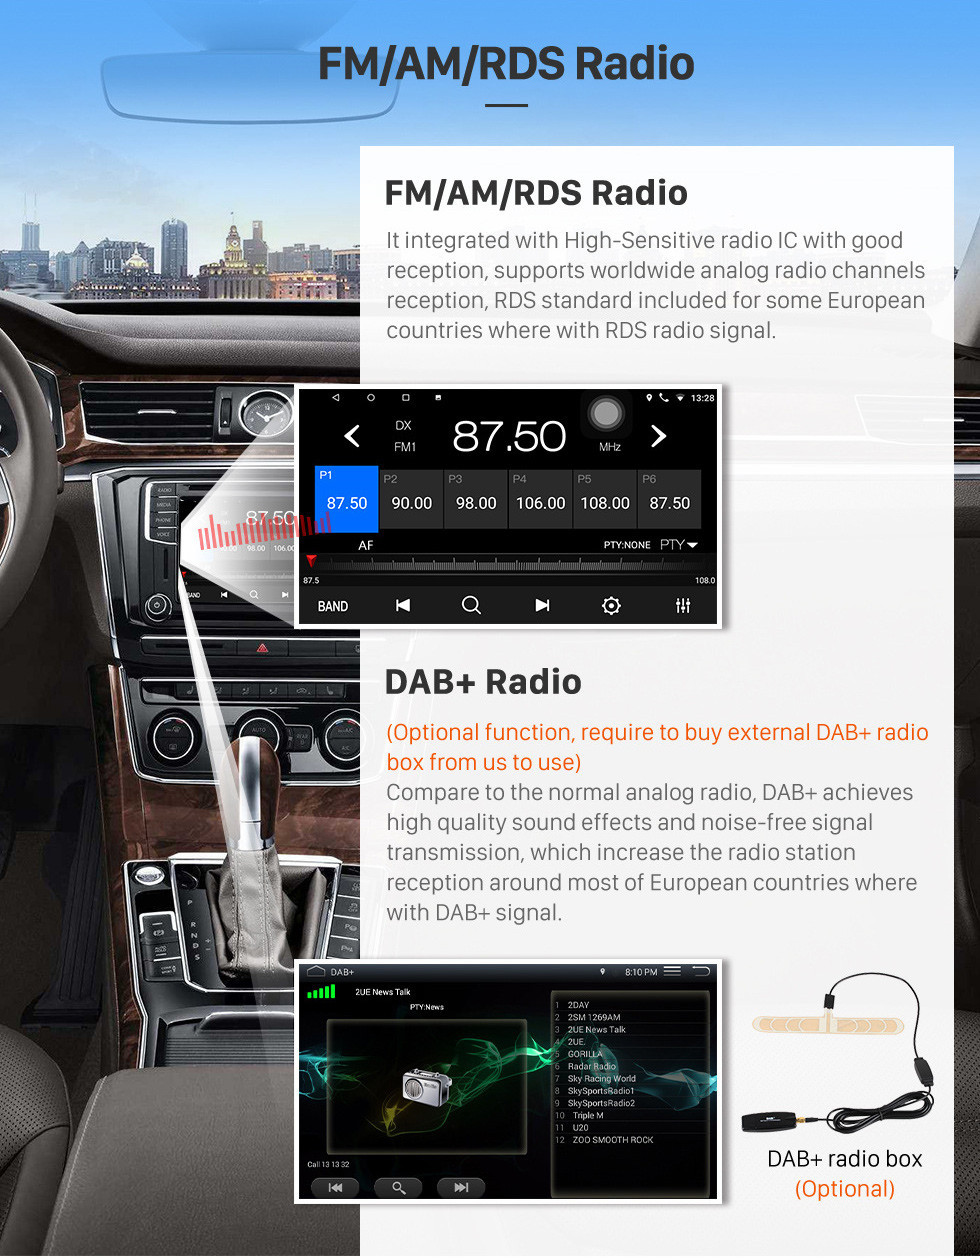 Seicane HD Touchscreen 9 inch Android 10.0 GPS Navigation Radio for 2000-2003 Toyota Camry with Bluetooth AUX support Carplay DAB+ OBD